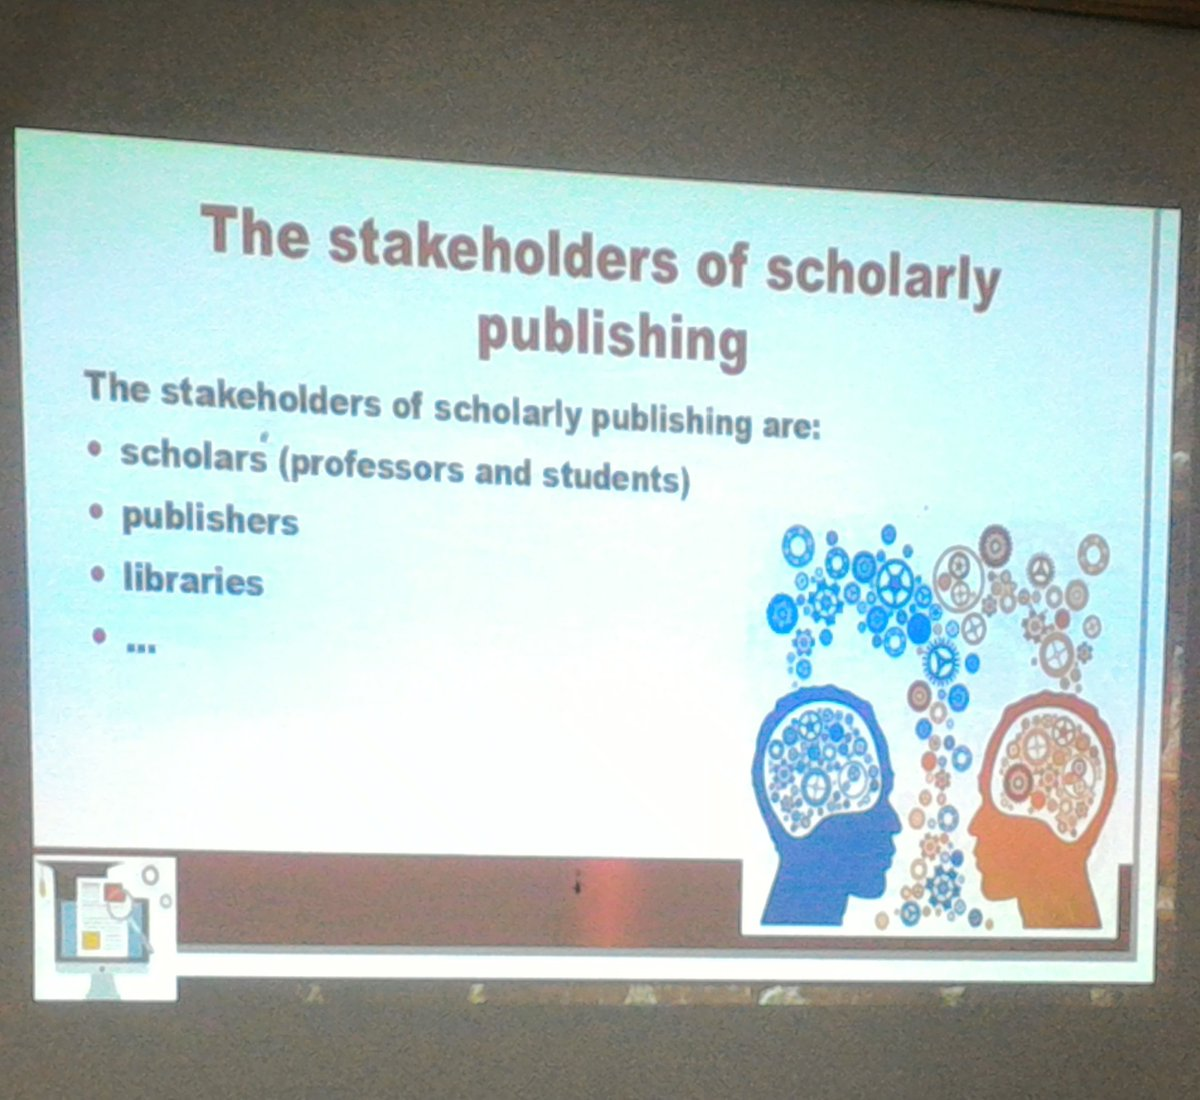 #essi #einfose @SimonaTurbanti starts talking about Scholarly Publishing #libraryinformationscience<br>http://pic.twitter.com/yex4kXpPzS